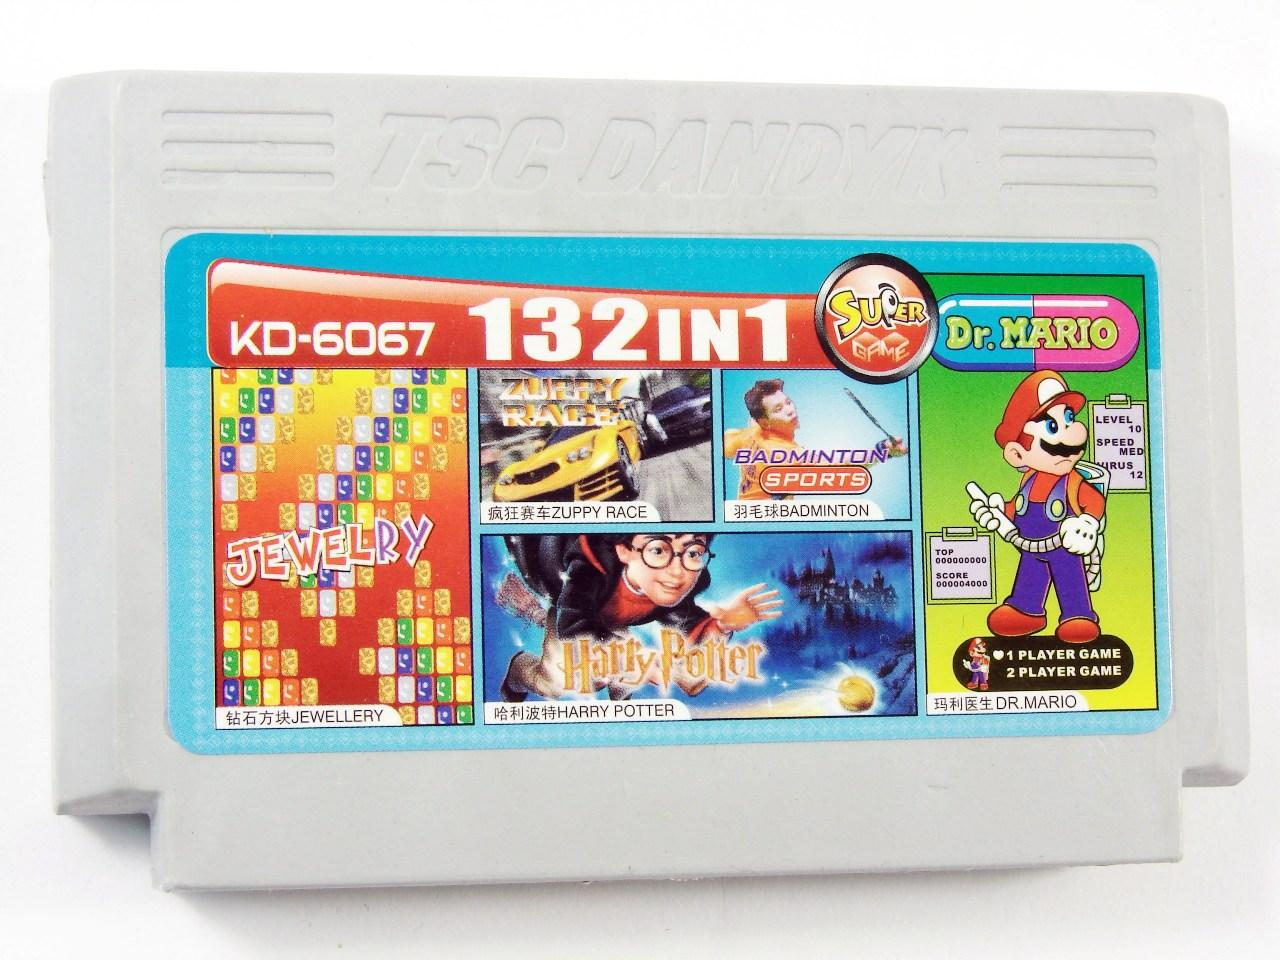 Картридж для Денди KD 6067 132 in 1 (Dendy), Jewellery, Zuppy Race, Harry Potter, Badminton, Dr. Mario